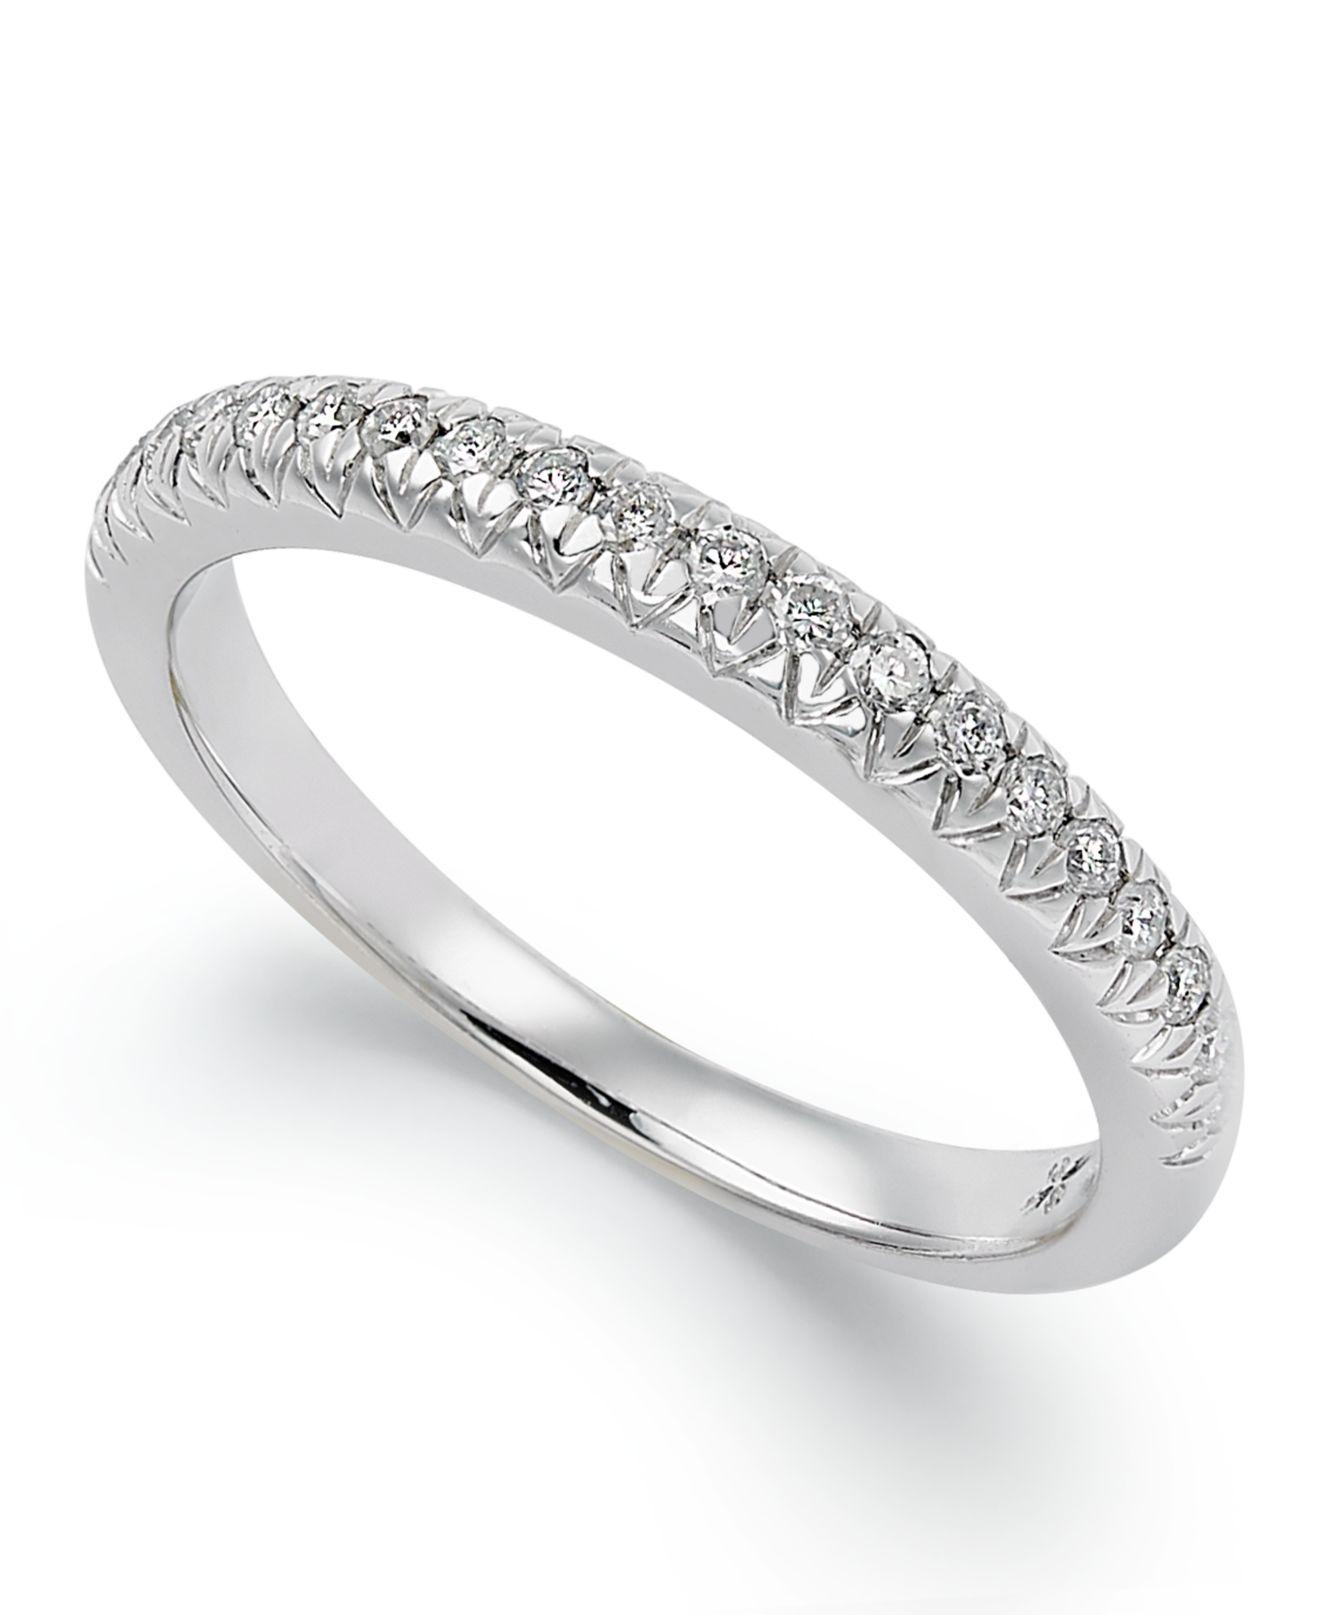 Lyst – Macy's Certified Diamond Anniversary Band Ring In 18K For Most Popular Certified Diamond Anniversary Bands In White Gold (View 6 of 25)